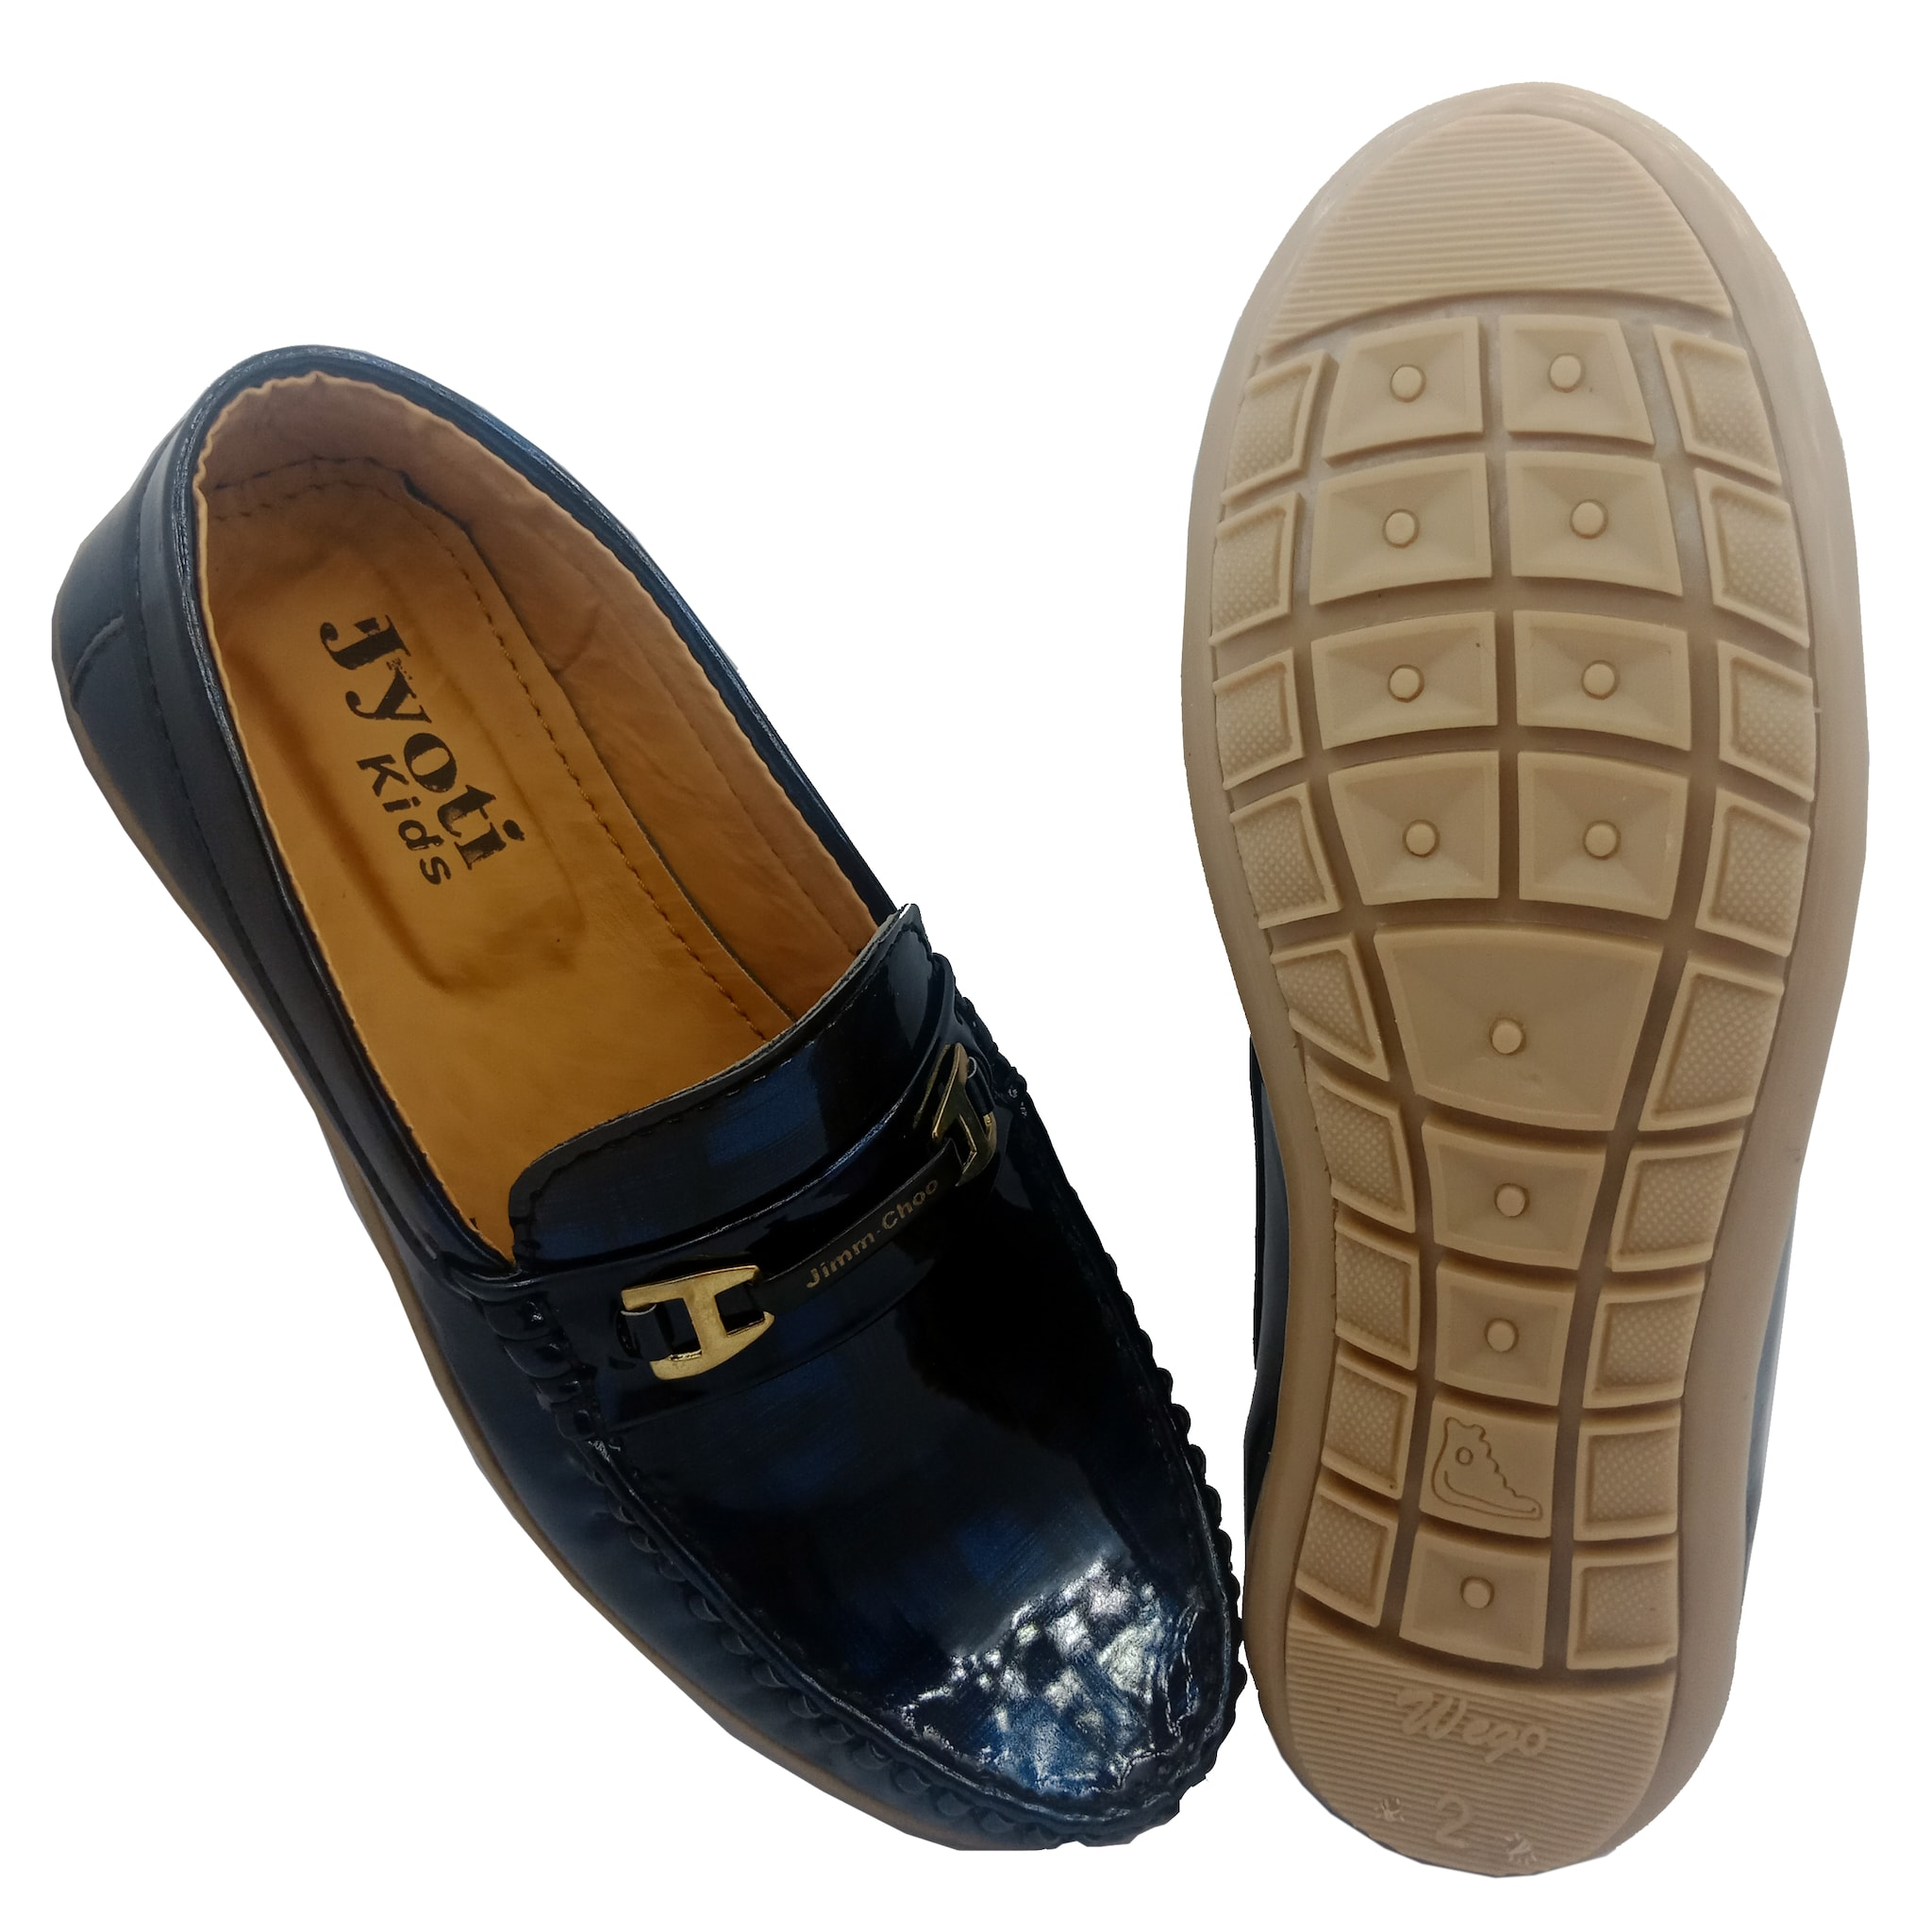 A.P.S  KID'S COMFORTABLE STYLISH TRENDY & FASHIONABLE SHOES APS035K (BLUE,2-5,8 PAIR)